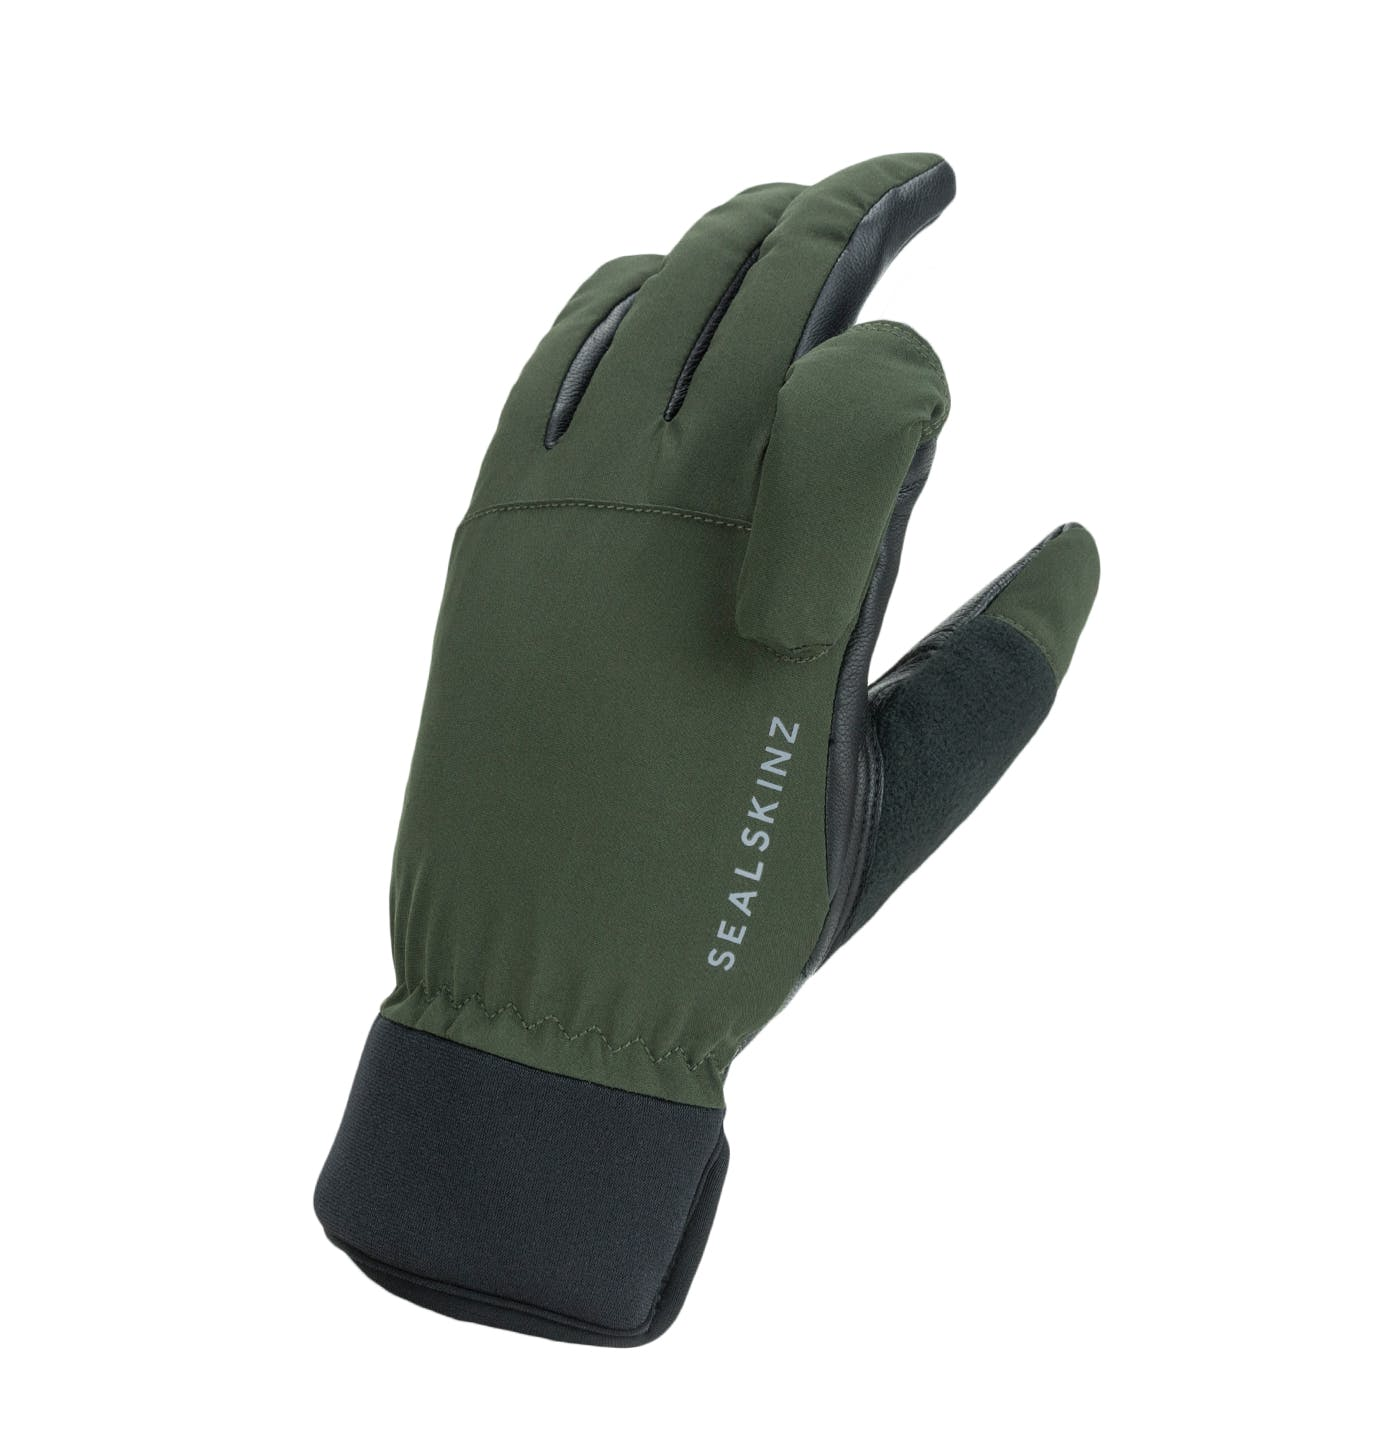 Waterproof All Weather Shooting Glove